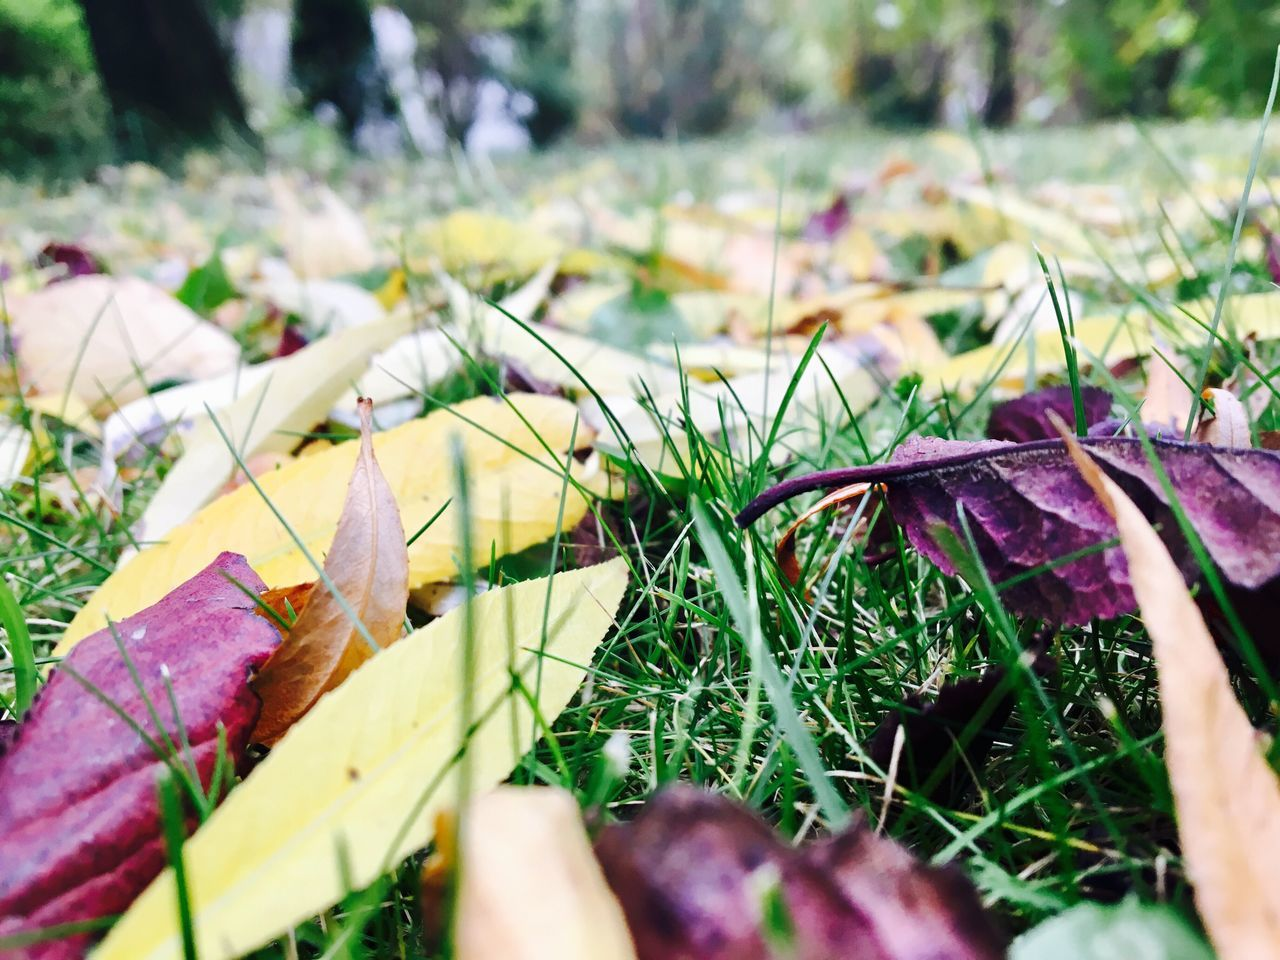 My garden! Nature Outdoors No People Beauty In Nature Day Autumn Grass Hungary Withphone Nophotoshop Tree Sun Sunshine Leaf NoEffects  Noeffect